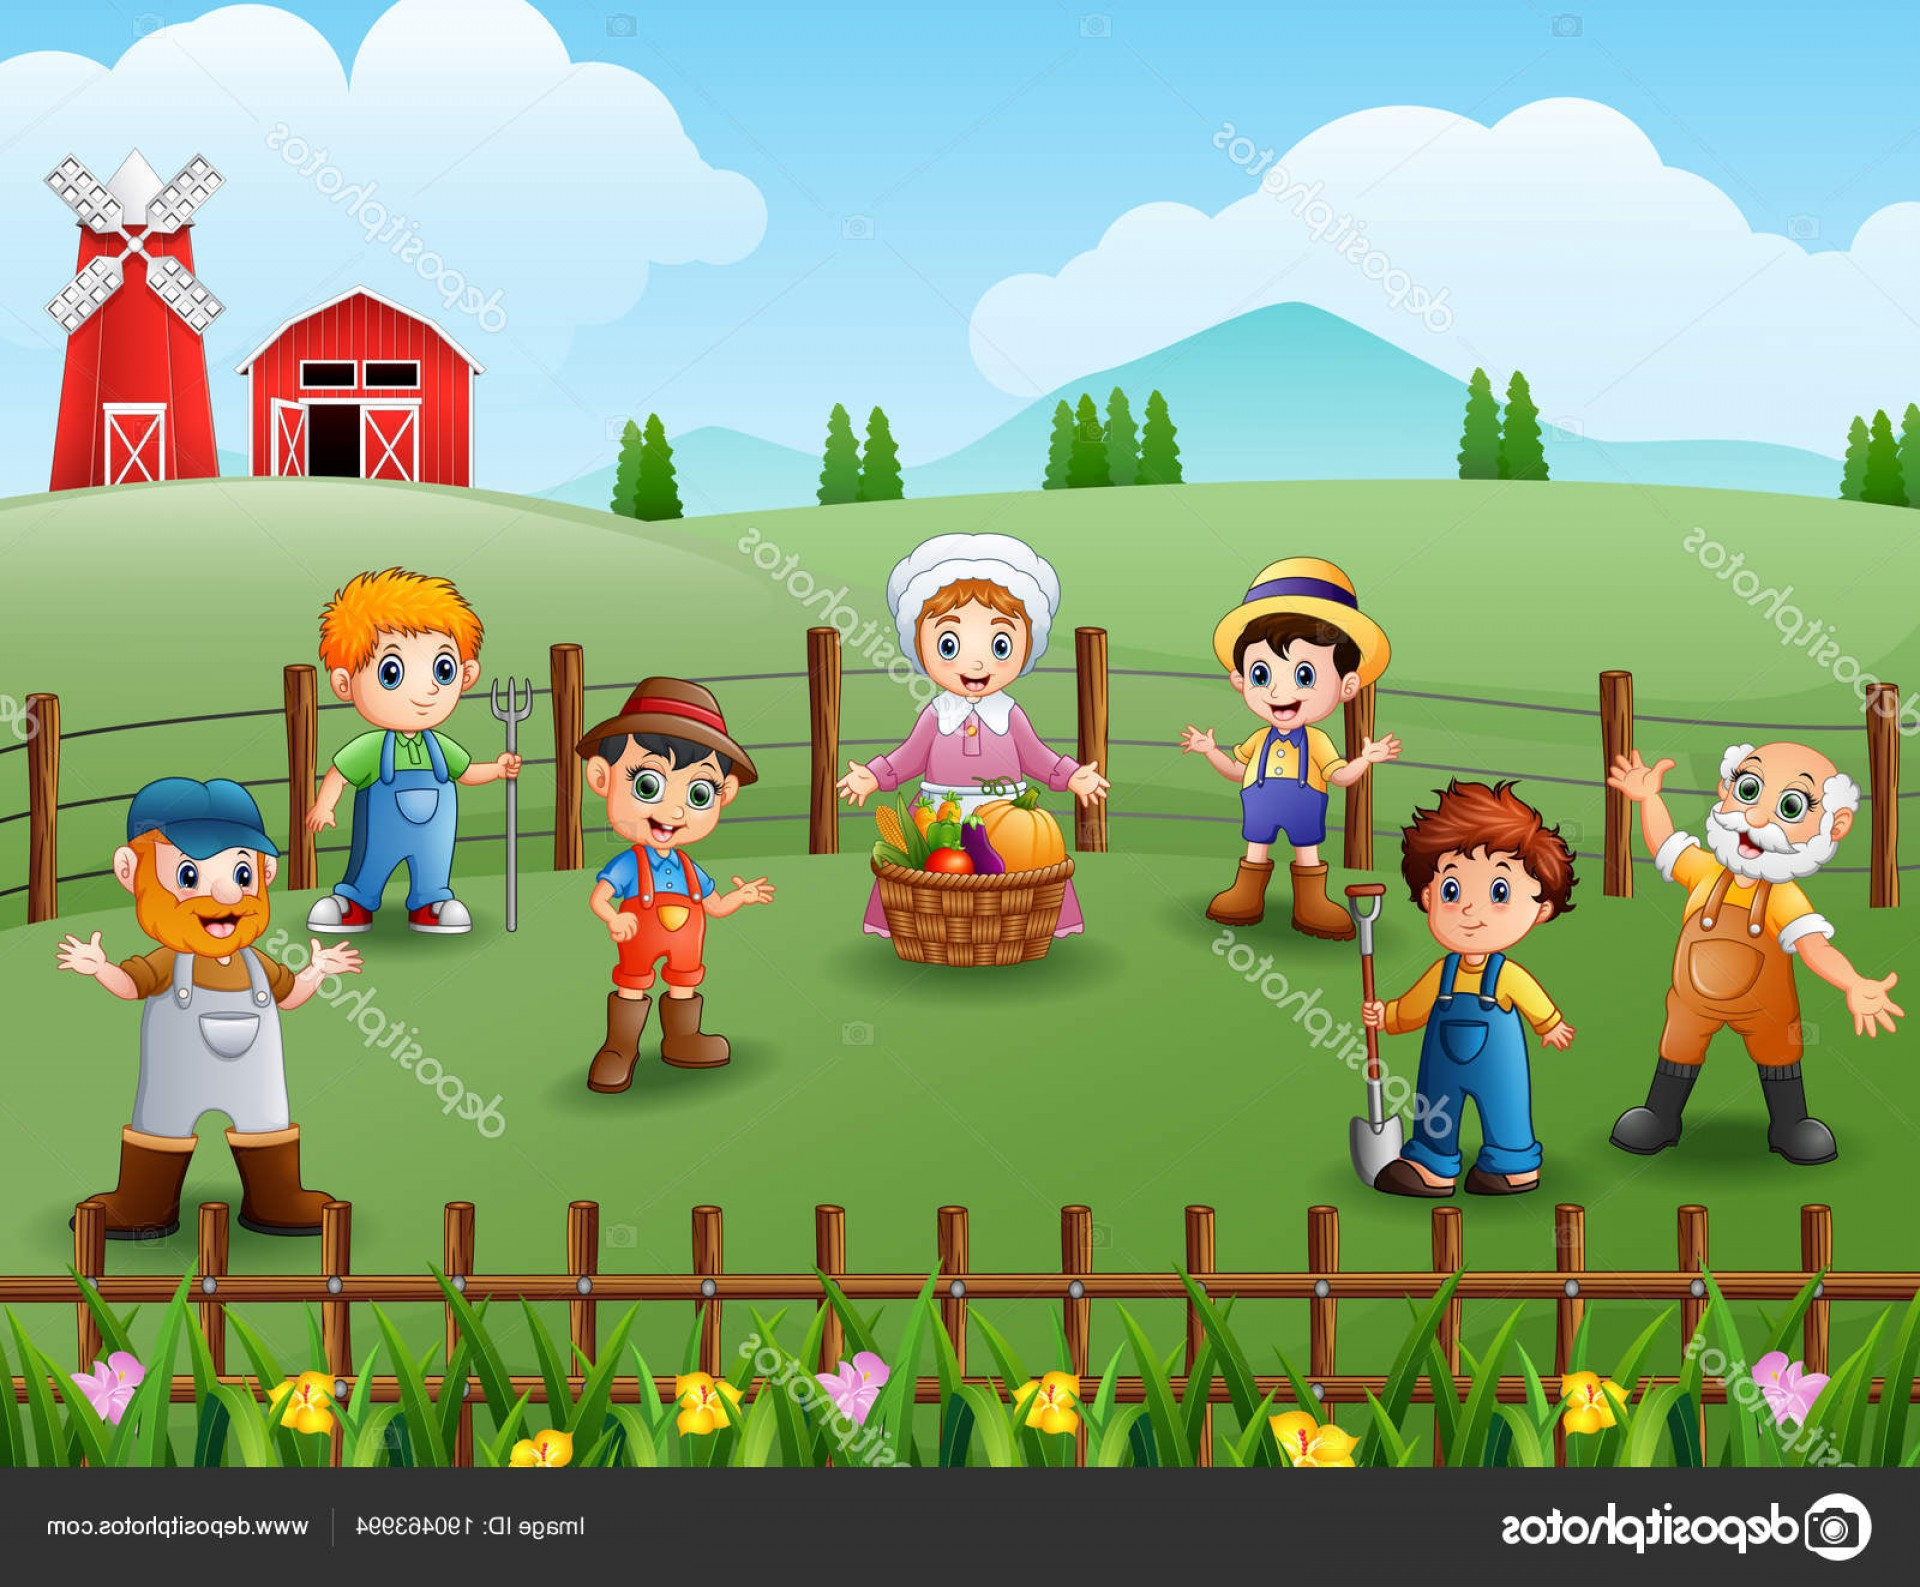 Farm Vector Illustration: Stock Illustration Vector Illustration Farmers Talking Enjoyed